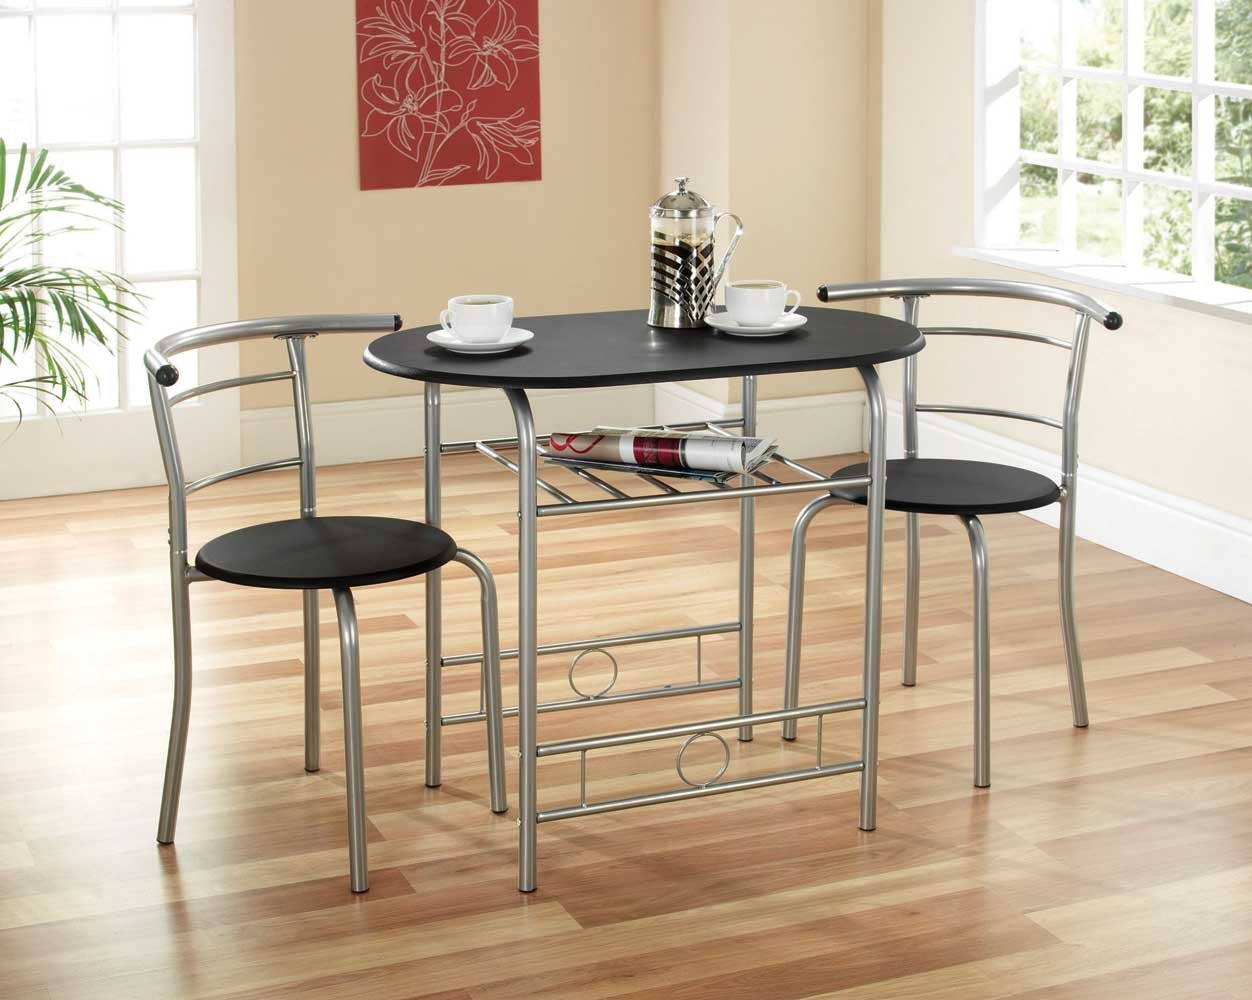 Dining Table Sets Shop | Amazon UK